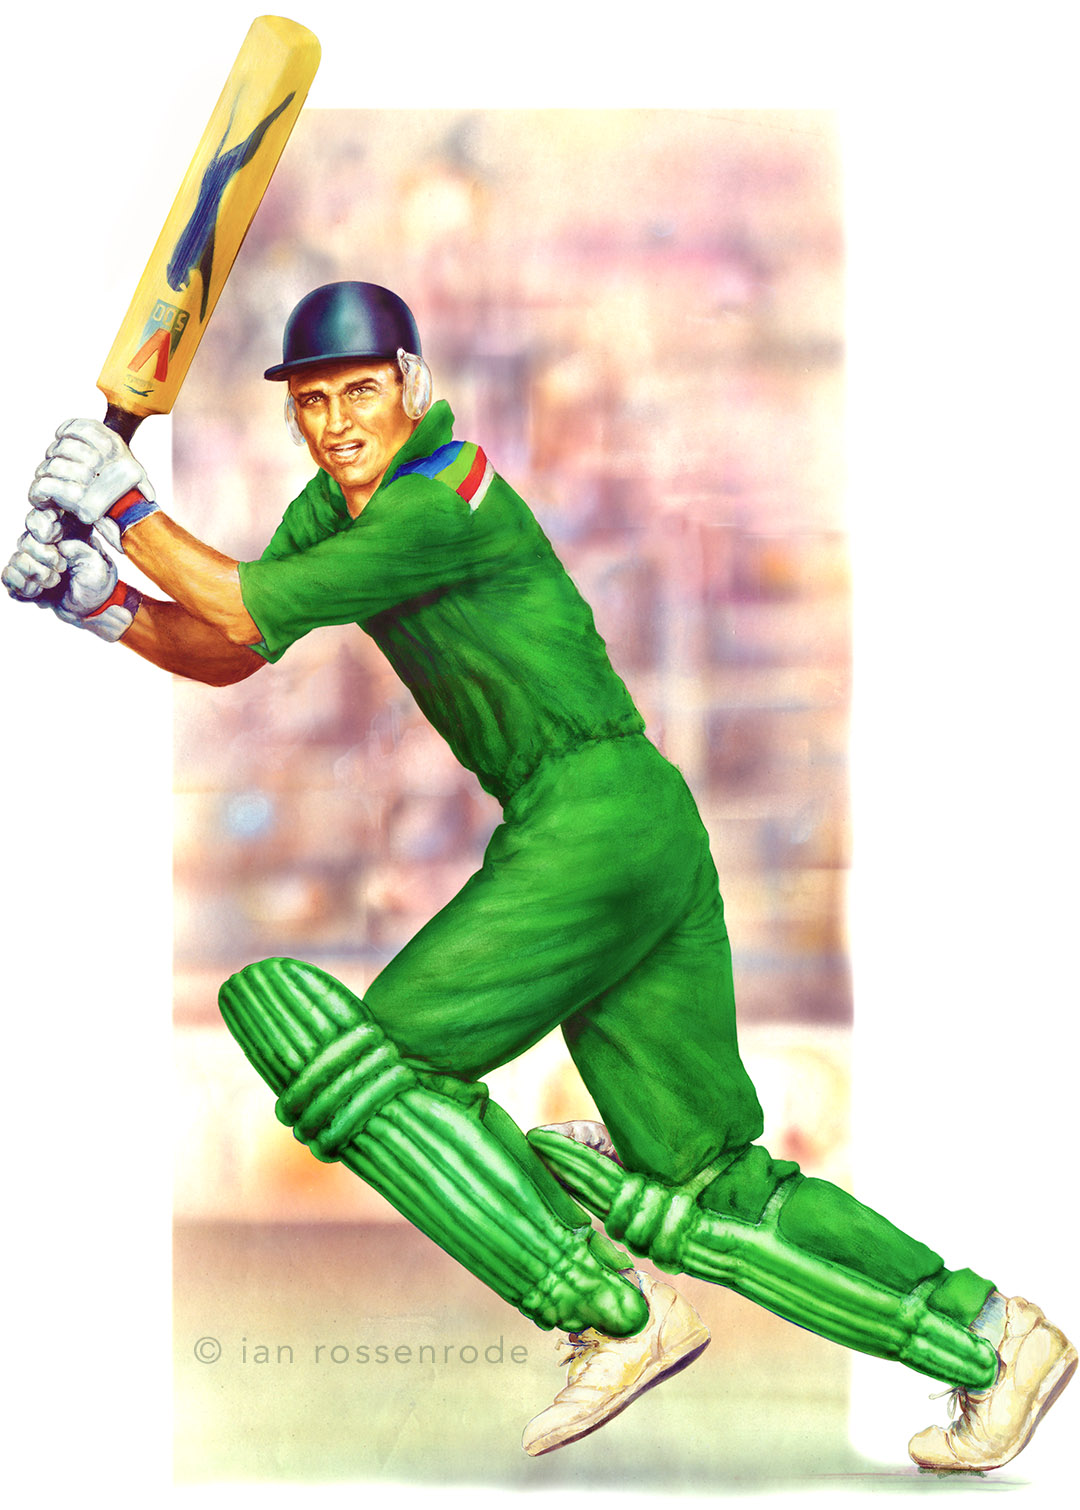 Cricketer illustration